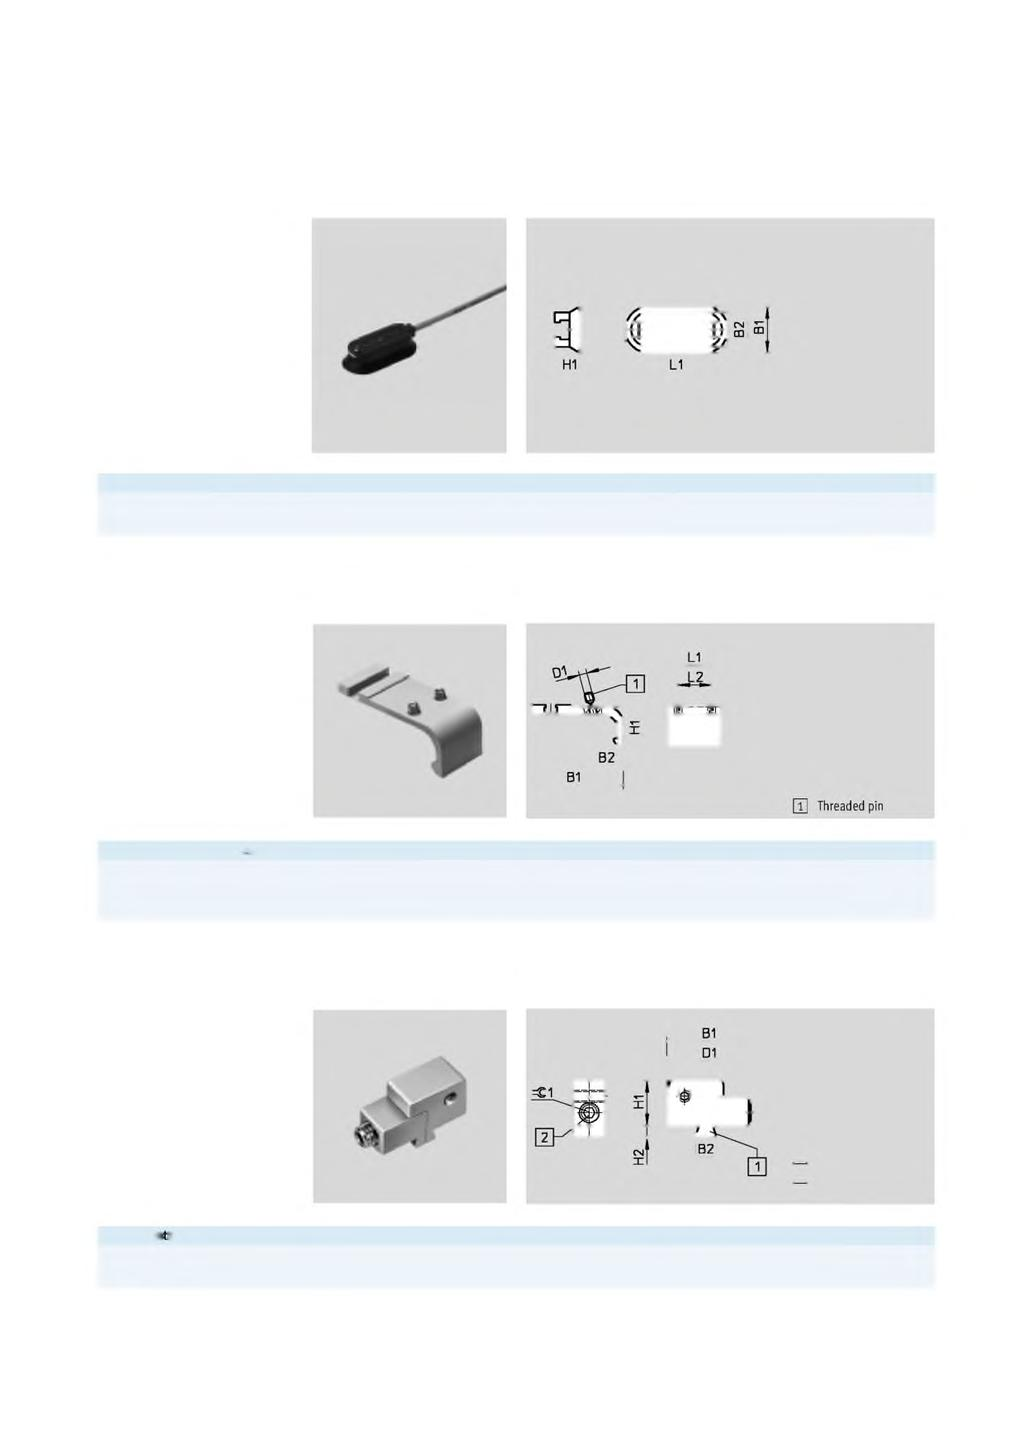 Proximity sensors SMT/SME-8, for T-slot Accessories MountingkitCRSMB Design: For round cylinders Type of mounting: Bonded using enclosed adhesive tape Degree of protection: IP65, IP68, IP69K Ambient